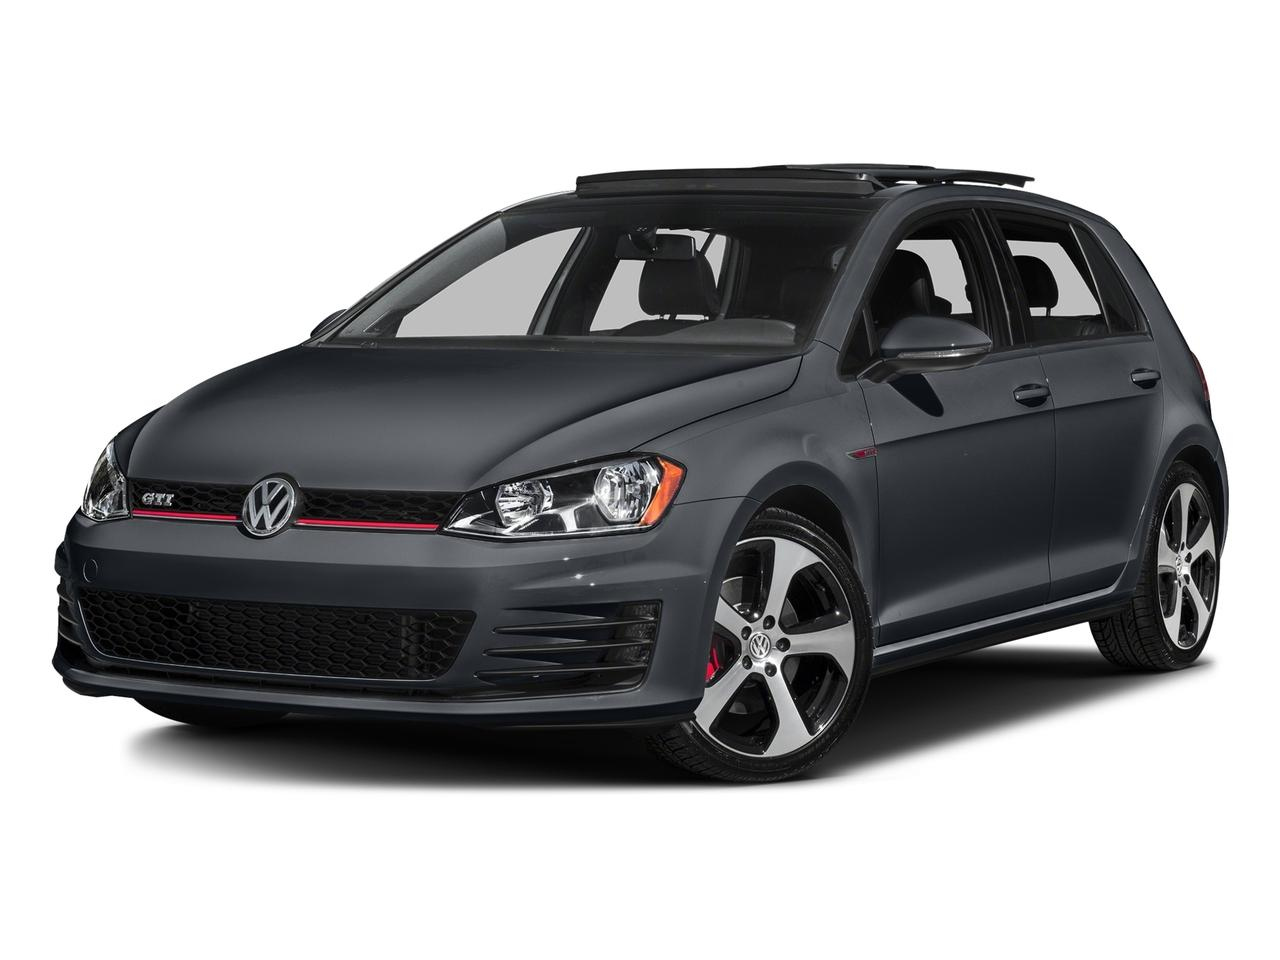 2017 Volkswagen Golf GTI Vehicle Photo in Corpus Christi, TX 78411